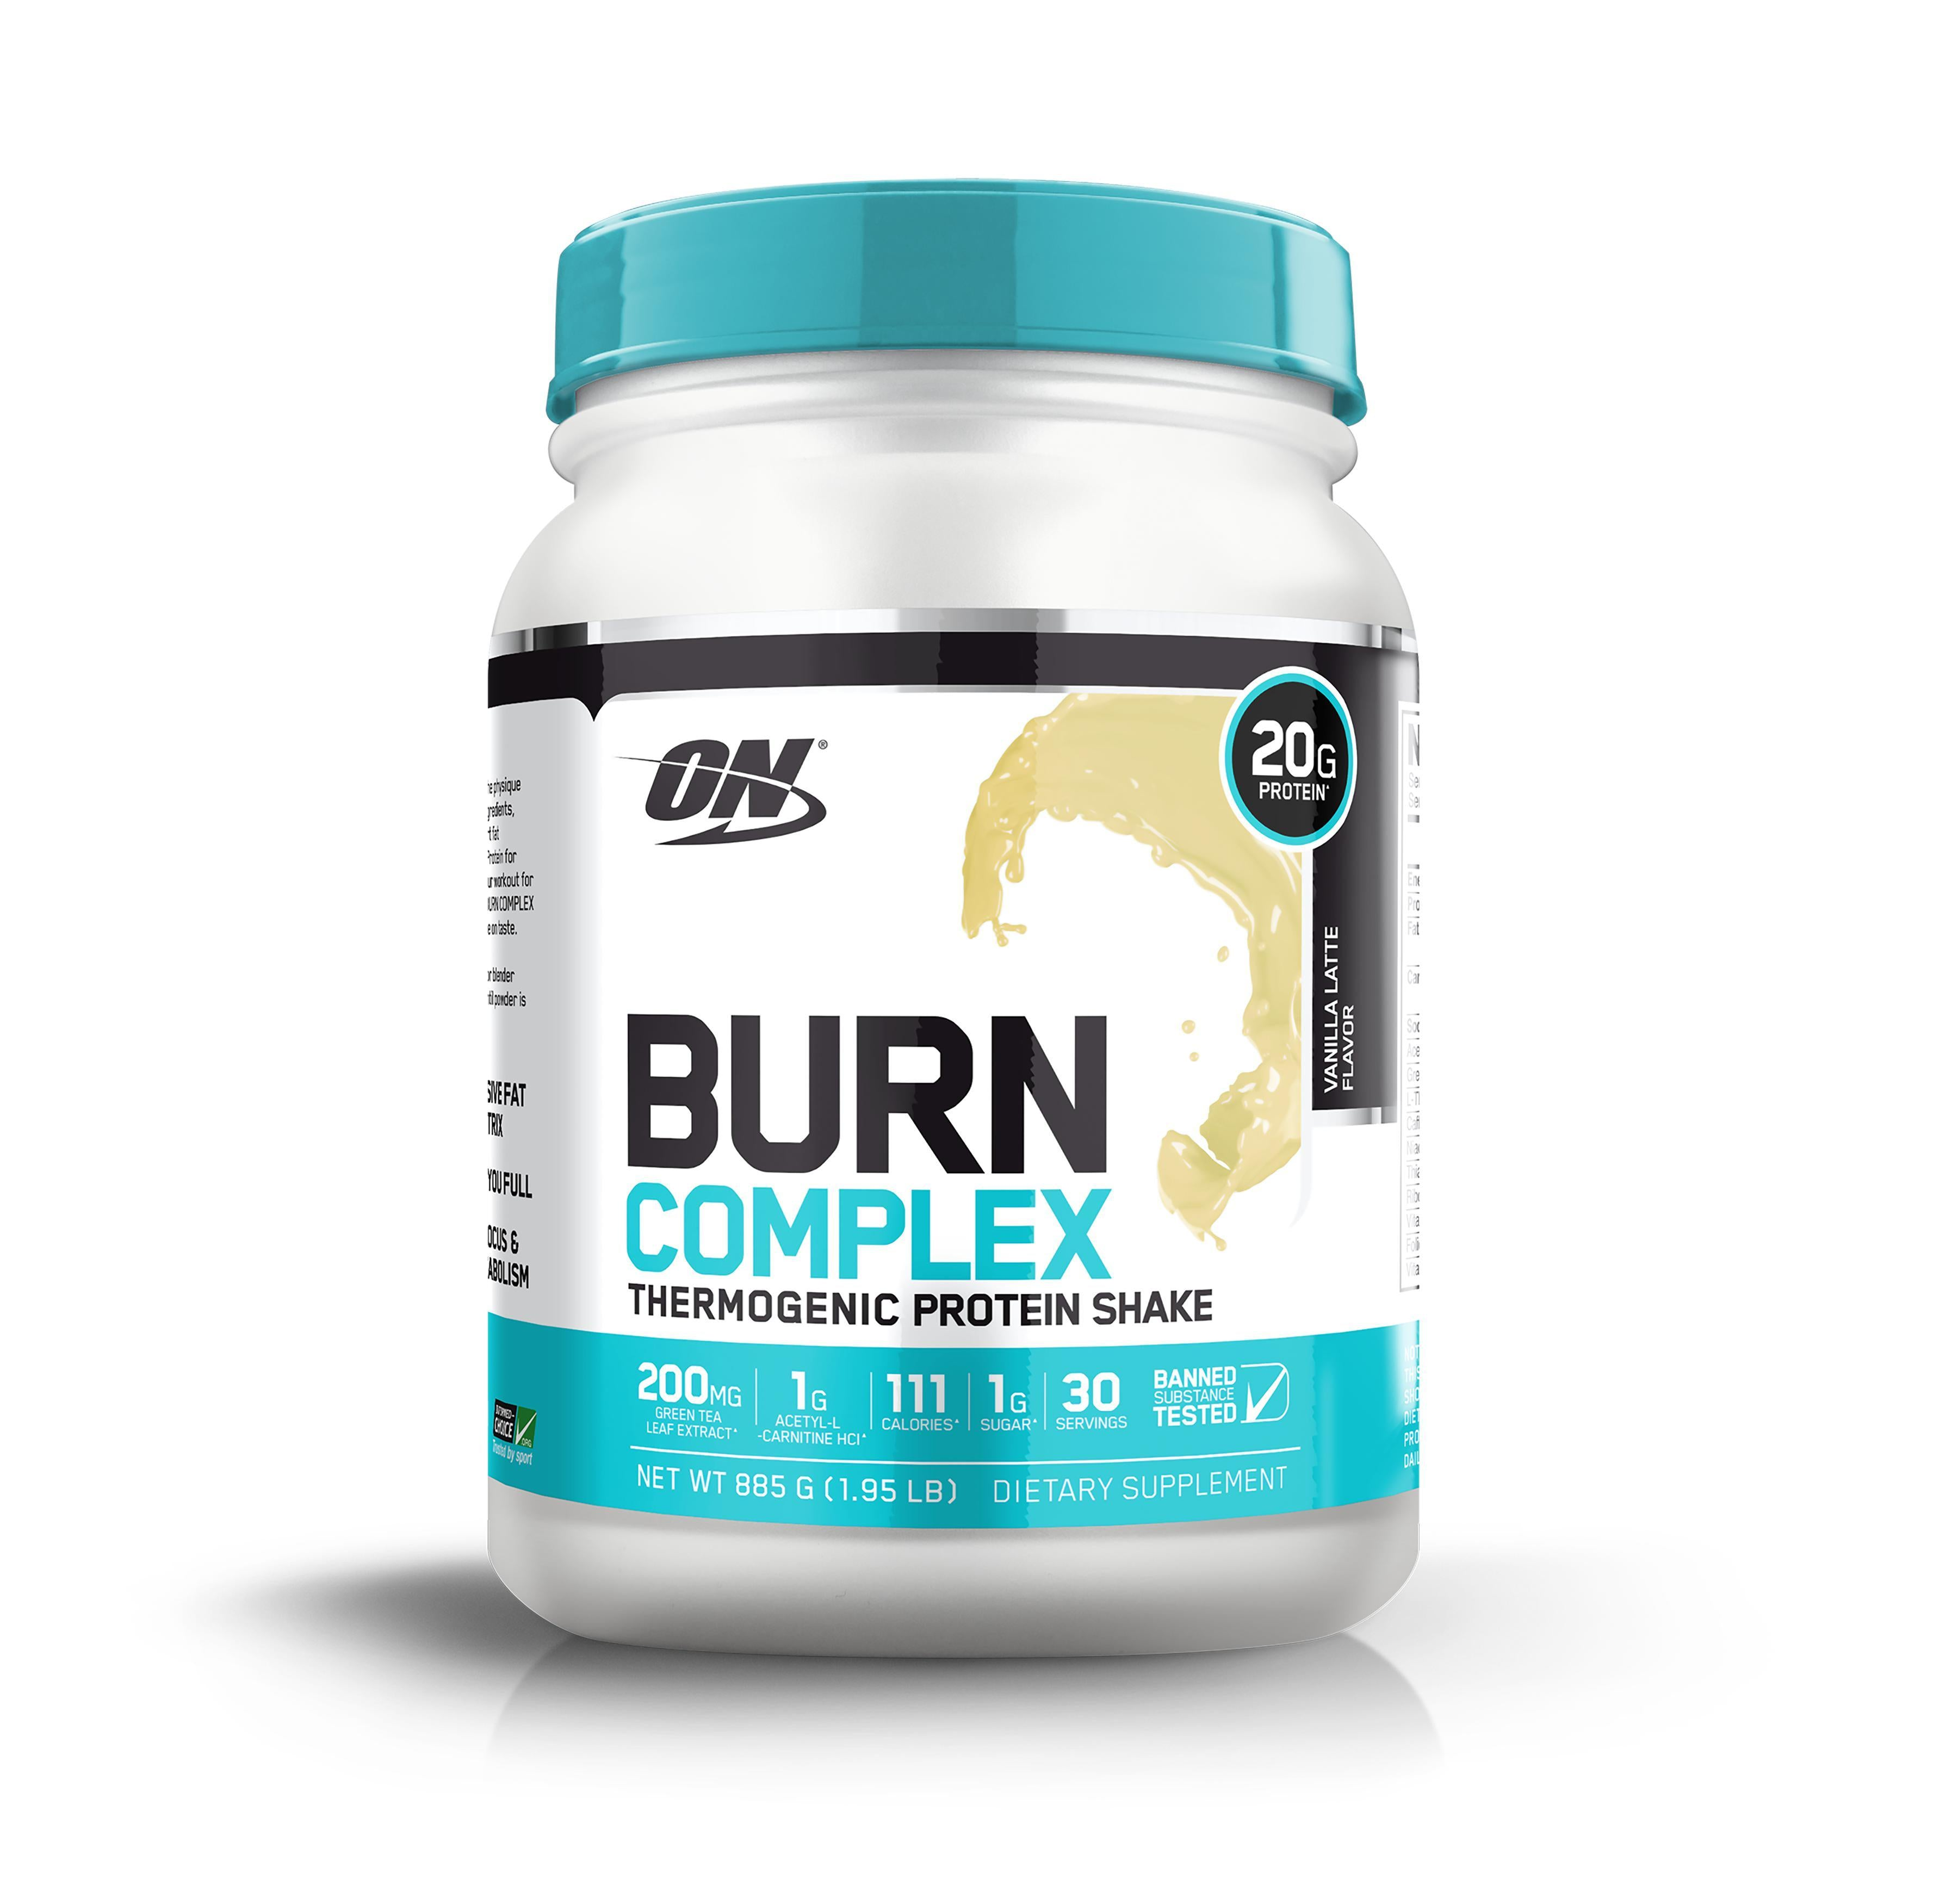 ON Burn Complex Protein-Protein - Weight Loss Protein-Optimum Nutrition-30 Serves-VANILLA-LATTE-Thrive Health and Nutrition